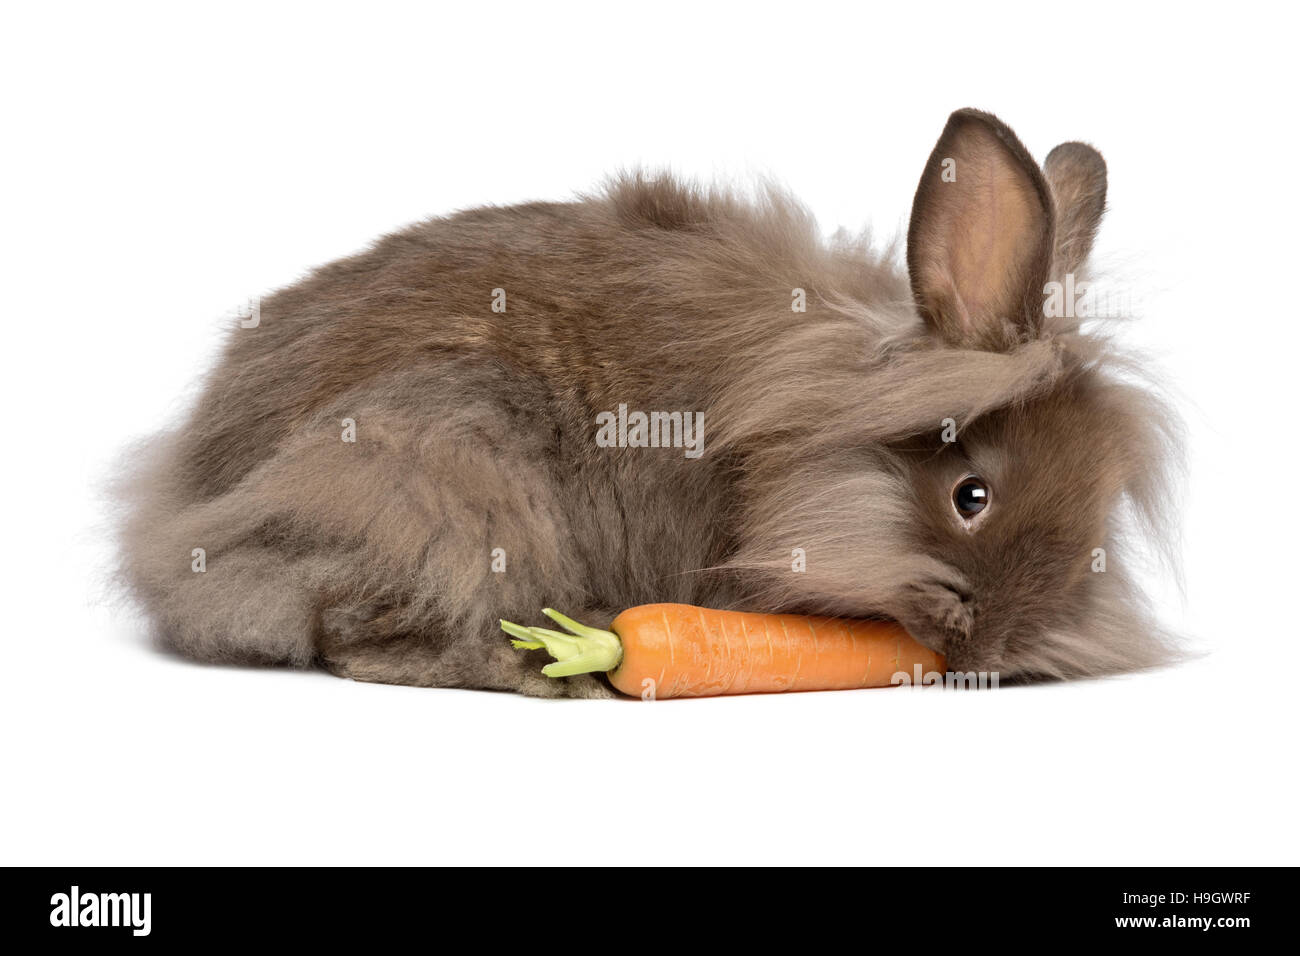 A cute chocolate colored mini lionhead bunny rabbit is eating a carrot - Stock Image